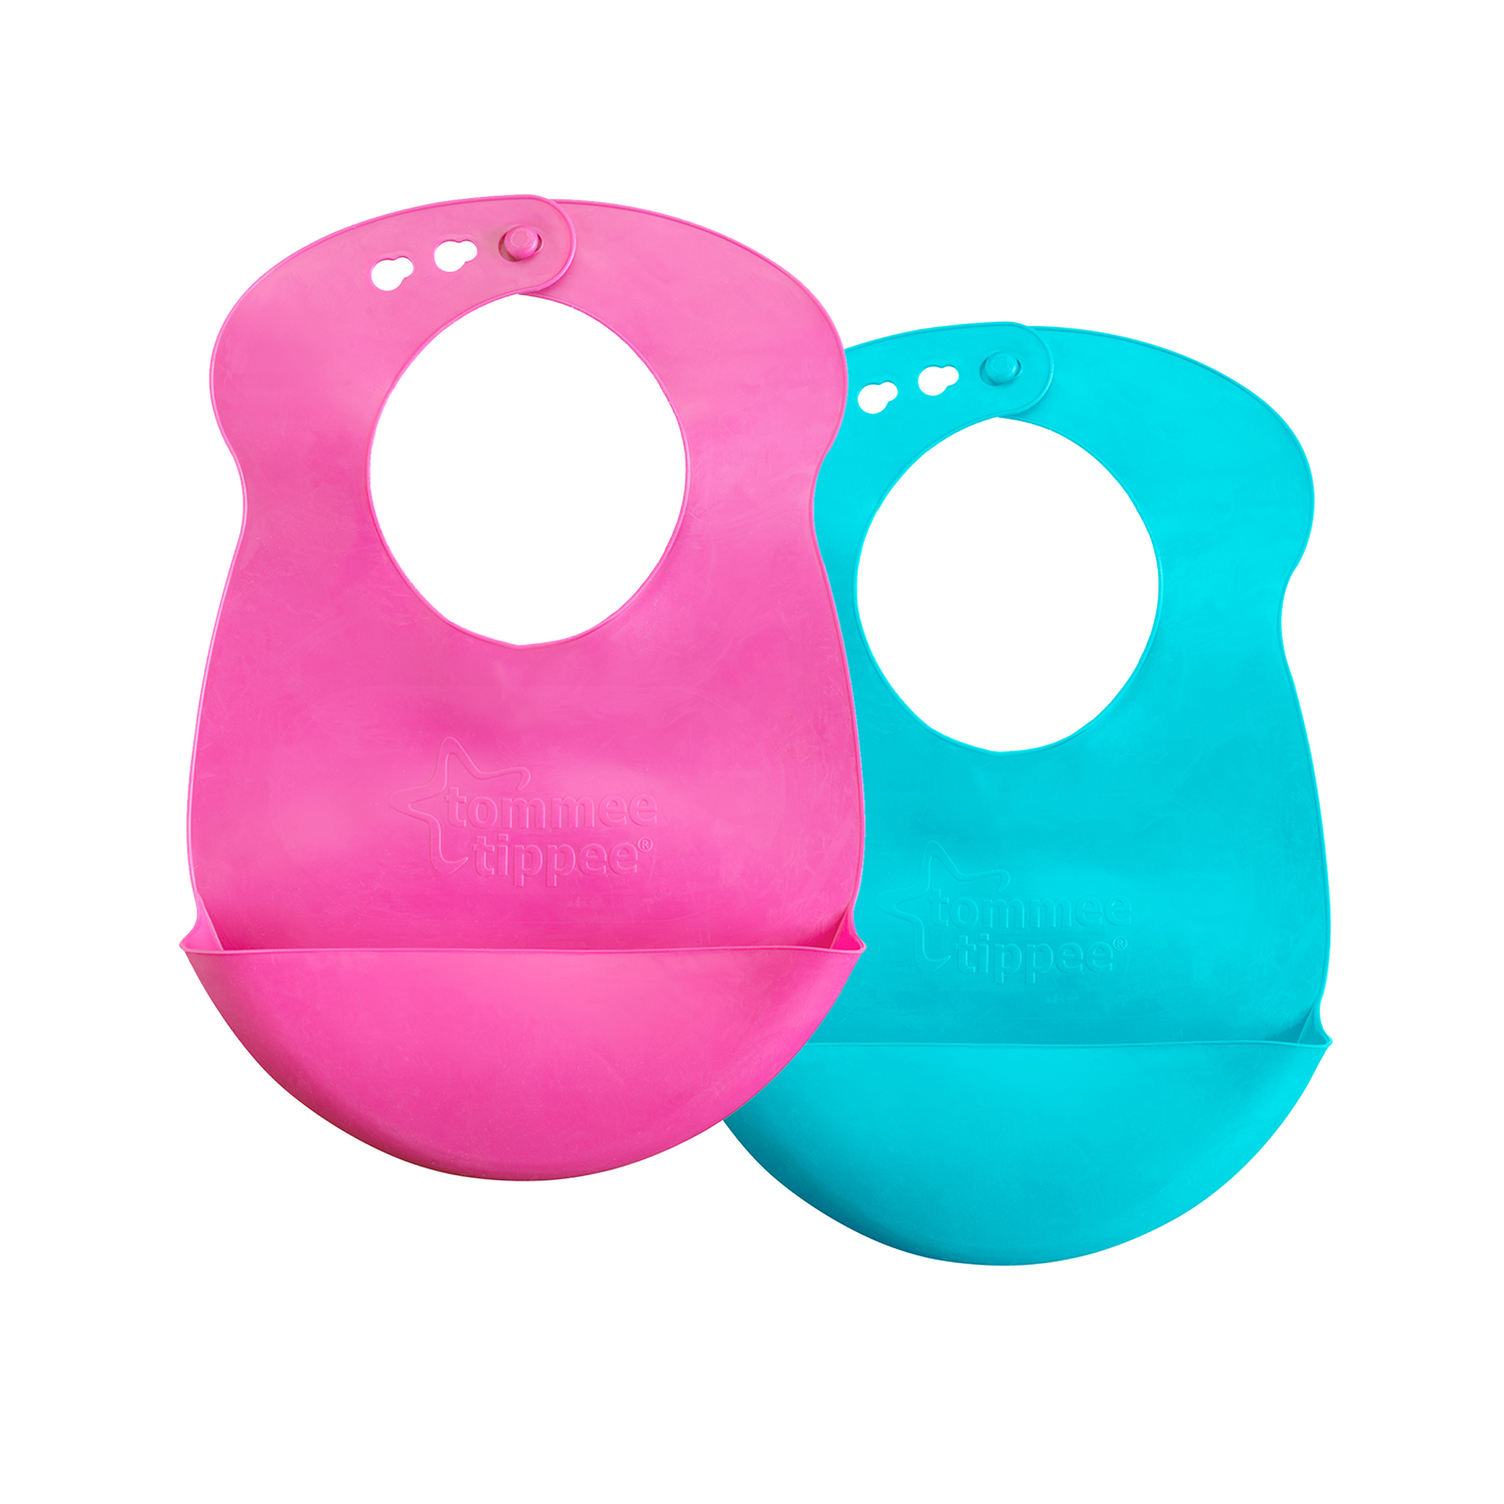 Tommee Tippee Easi-Roll Bib, Pink and Blue, 2 Count